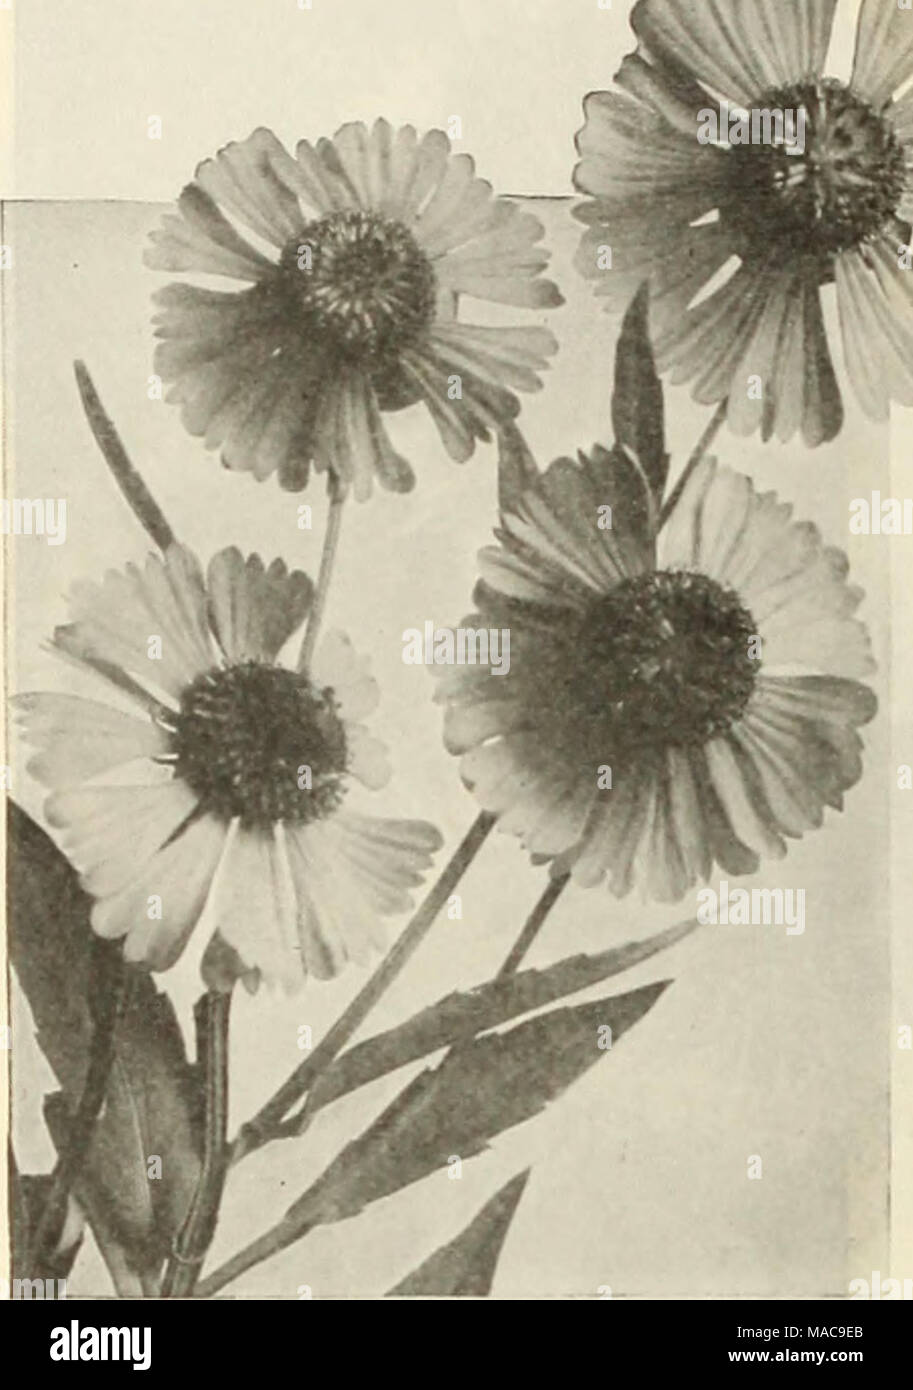 Dreers mid summer list 1925 helenium helenium sneeze wort dreers mid summer list 1925 helenium helenium sneeze wort strong growing hardy perennials succeeding in any soil and useful in the hardy border mightylinksfo